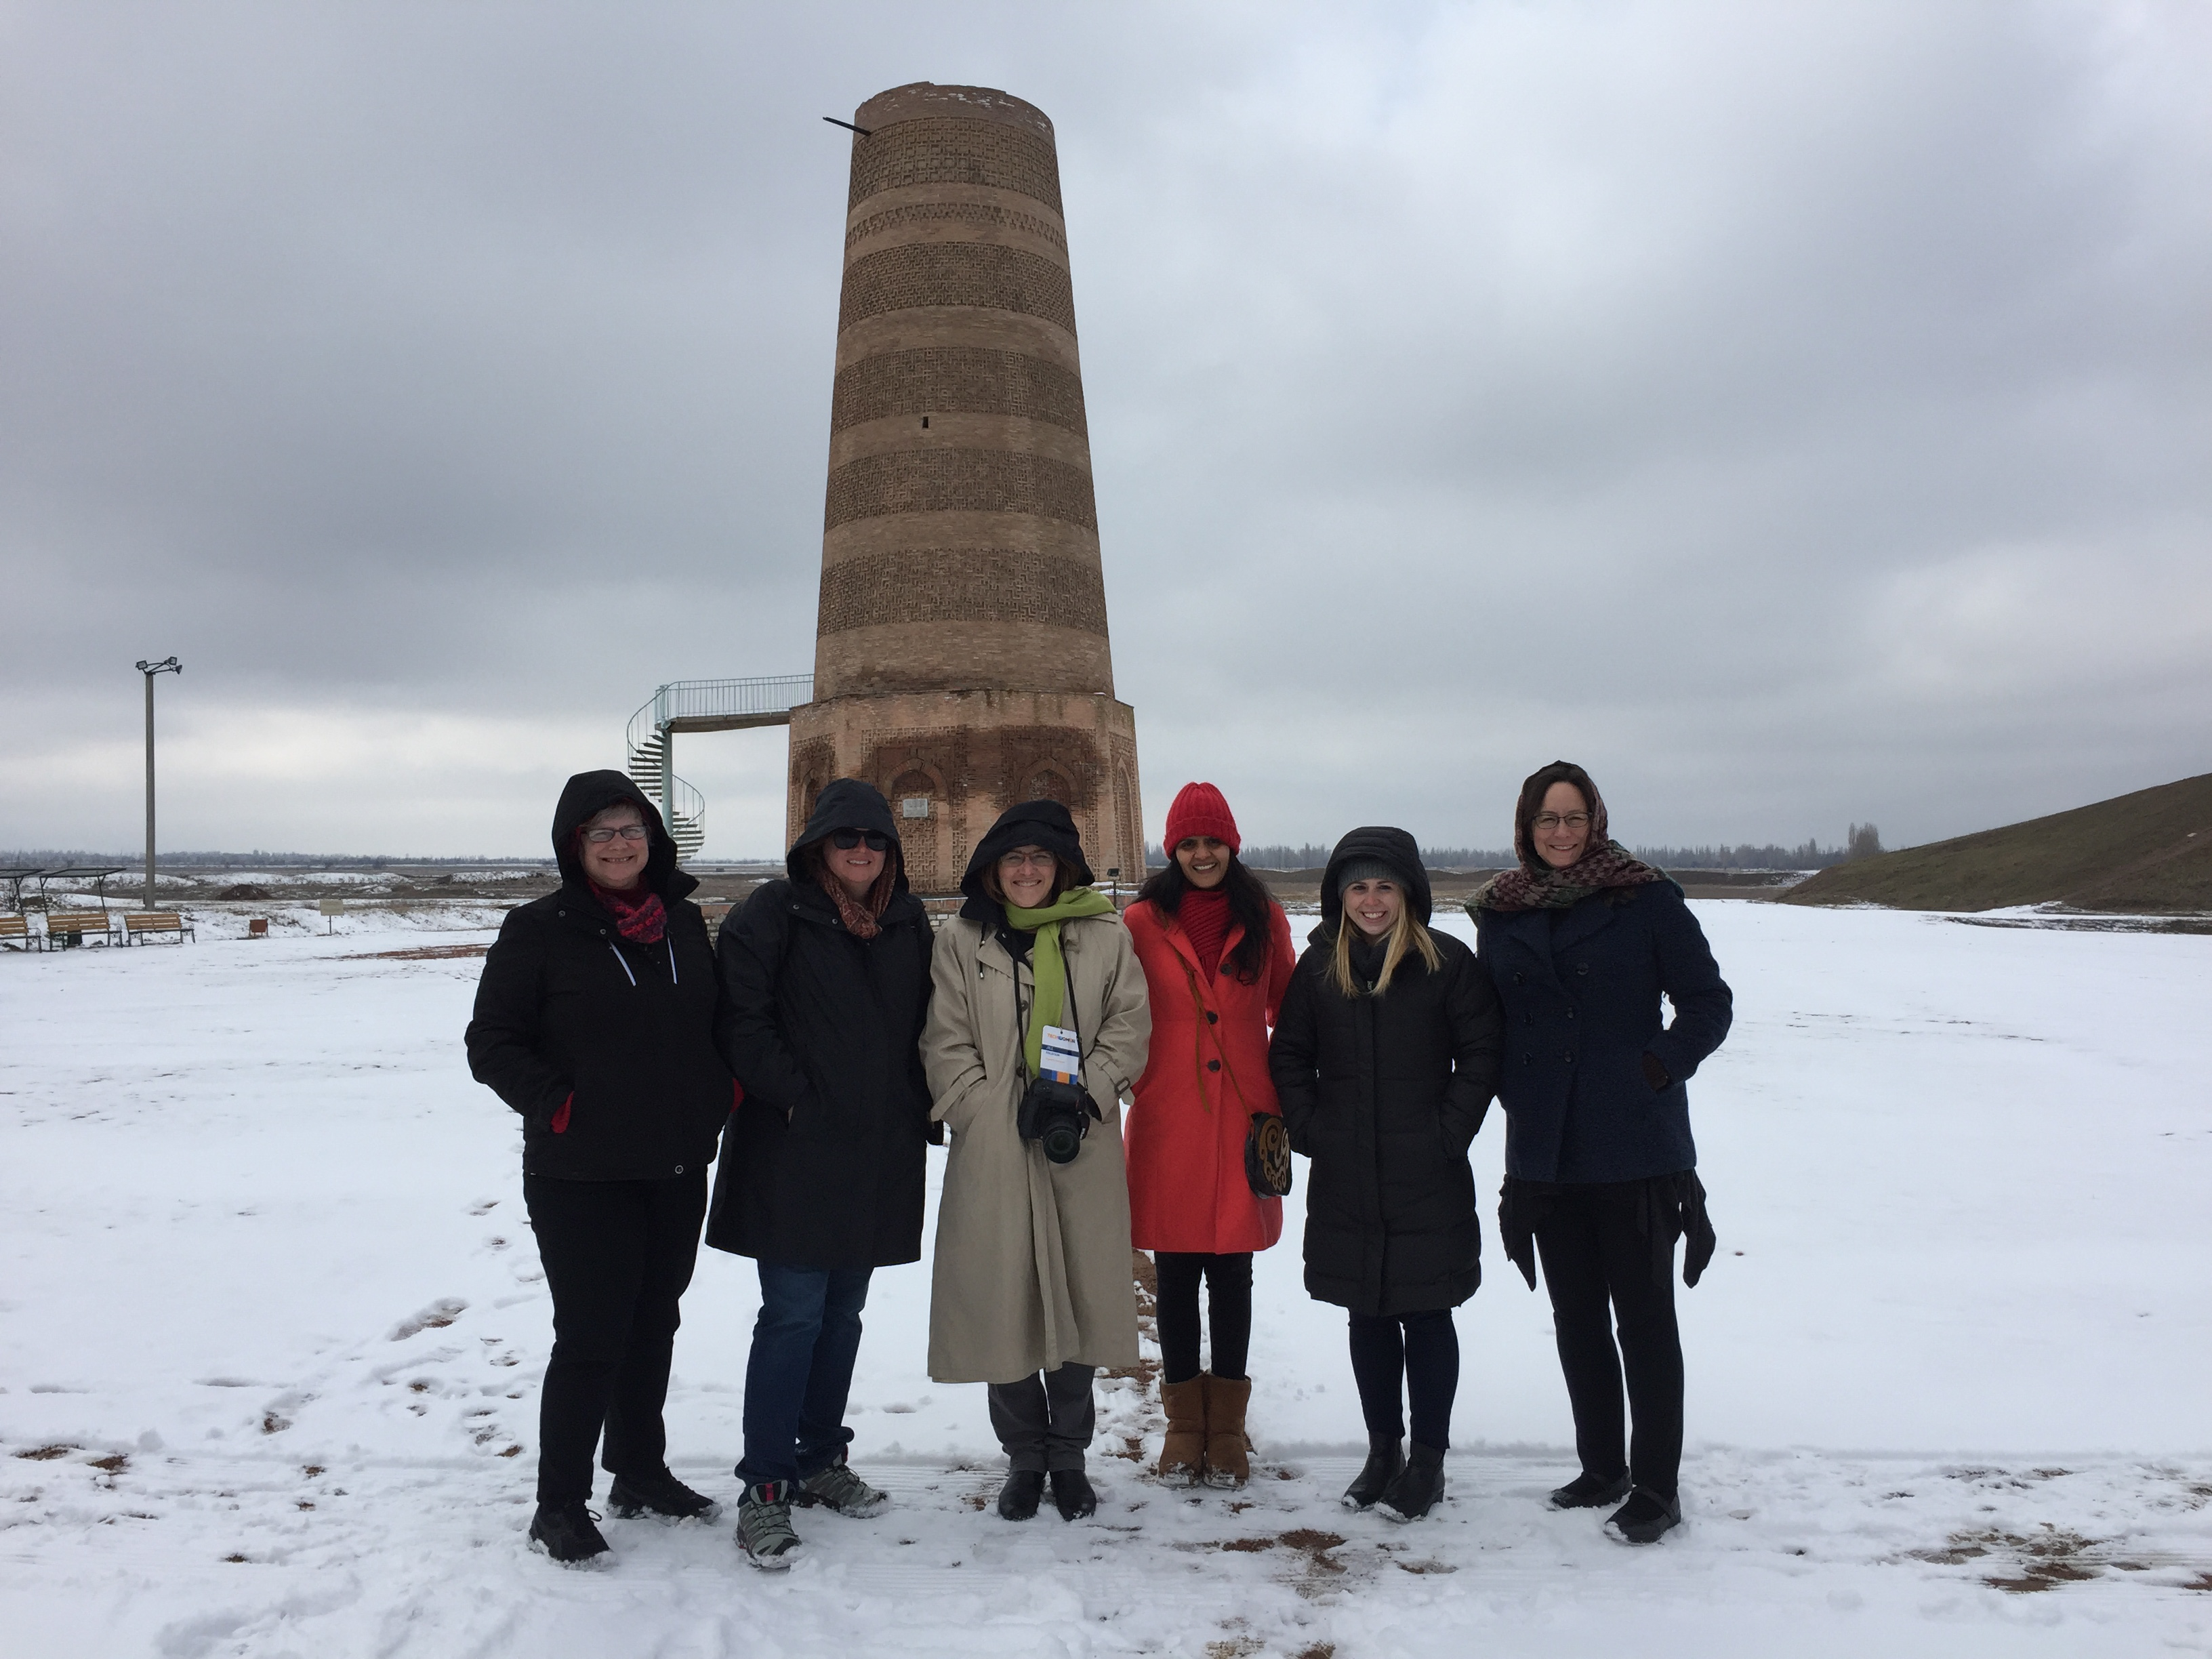 TechWomen Kyrgyzstan Delegation 2017 at Burana Tower